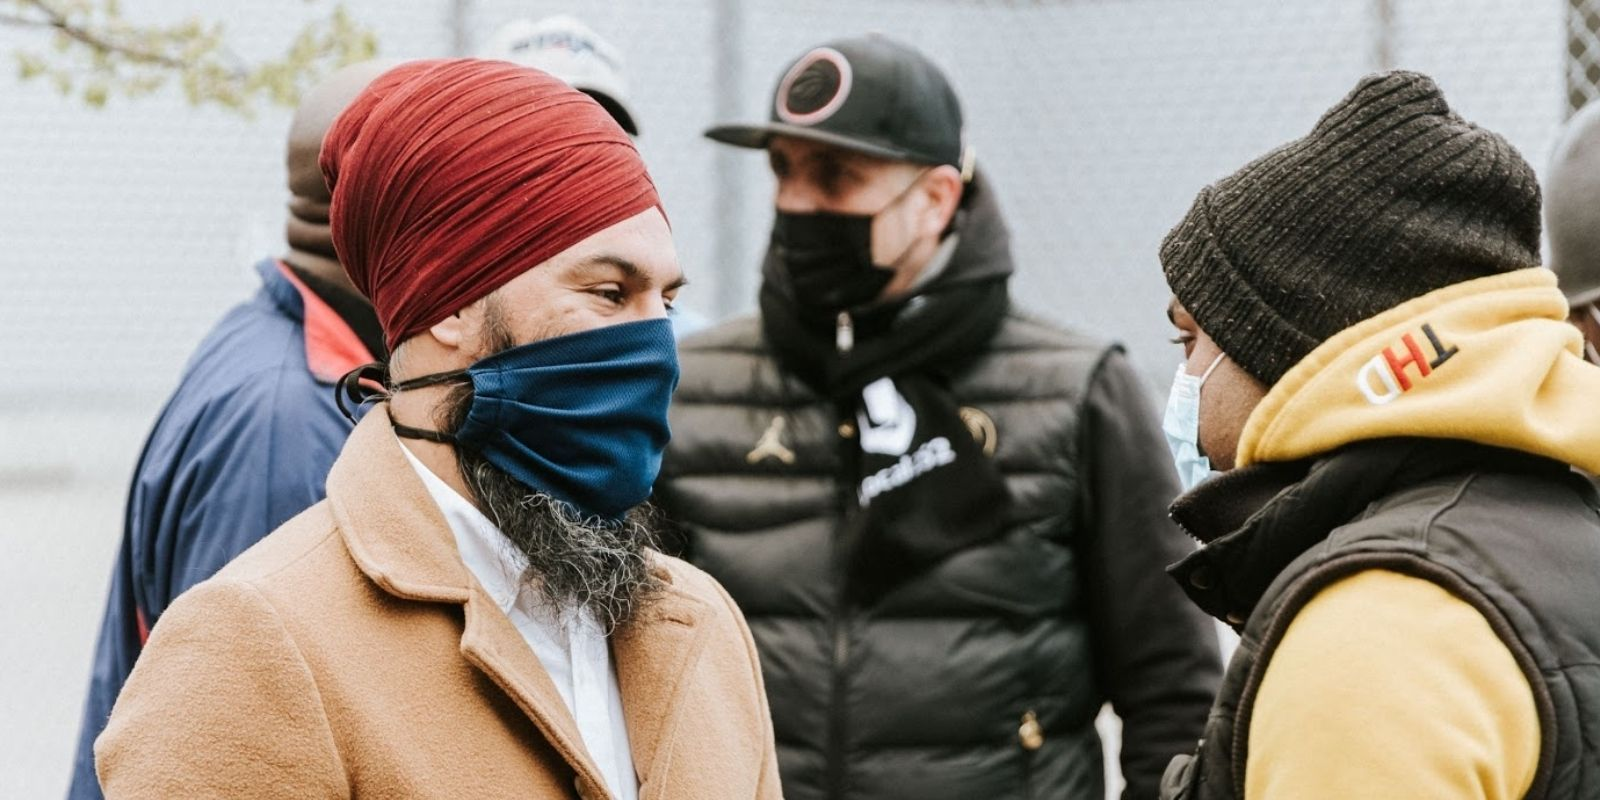 Jagmeet Singh claims there's a connection between anti-lockdown protestors and right-wing extremism